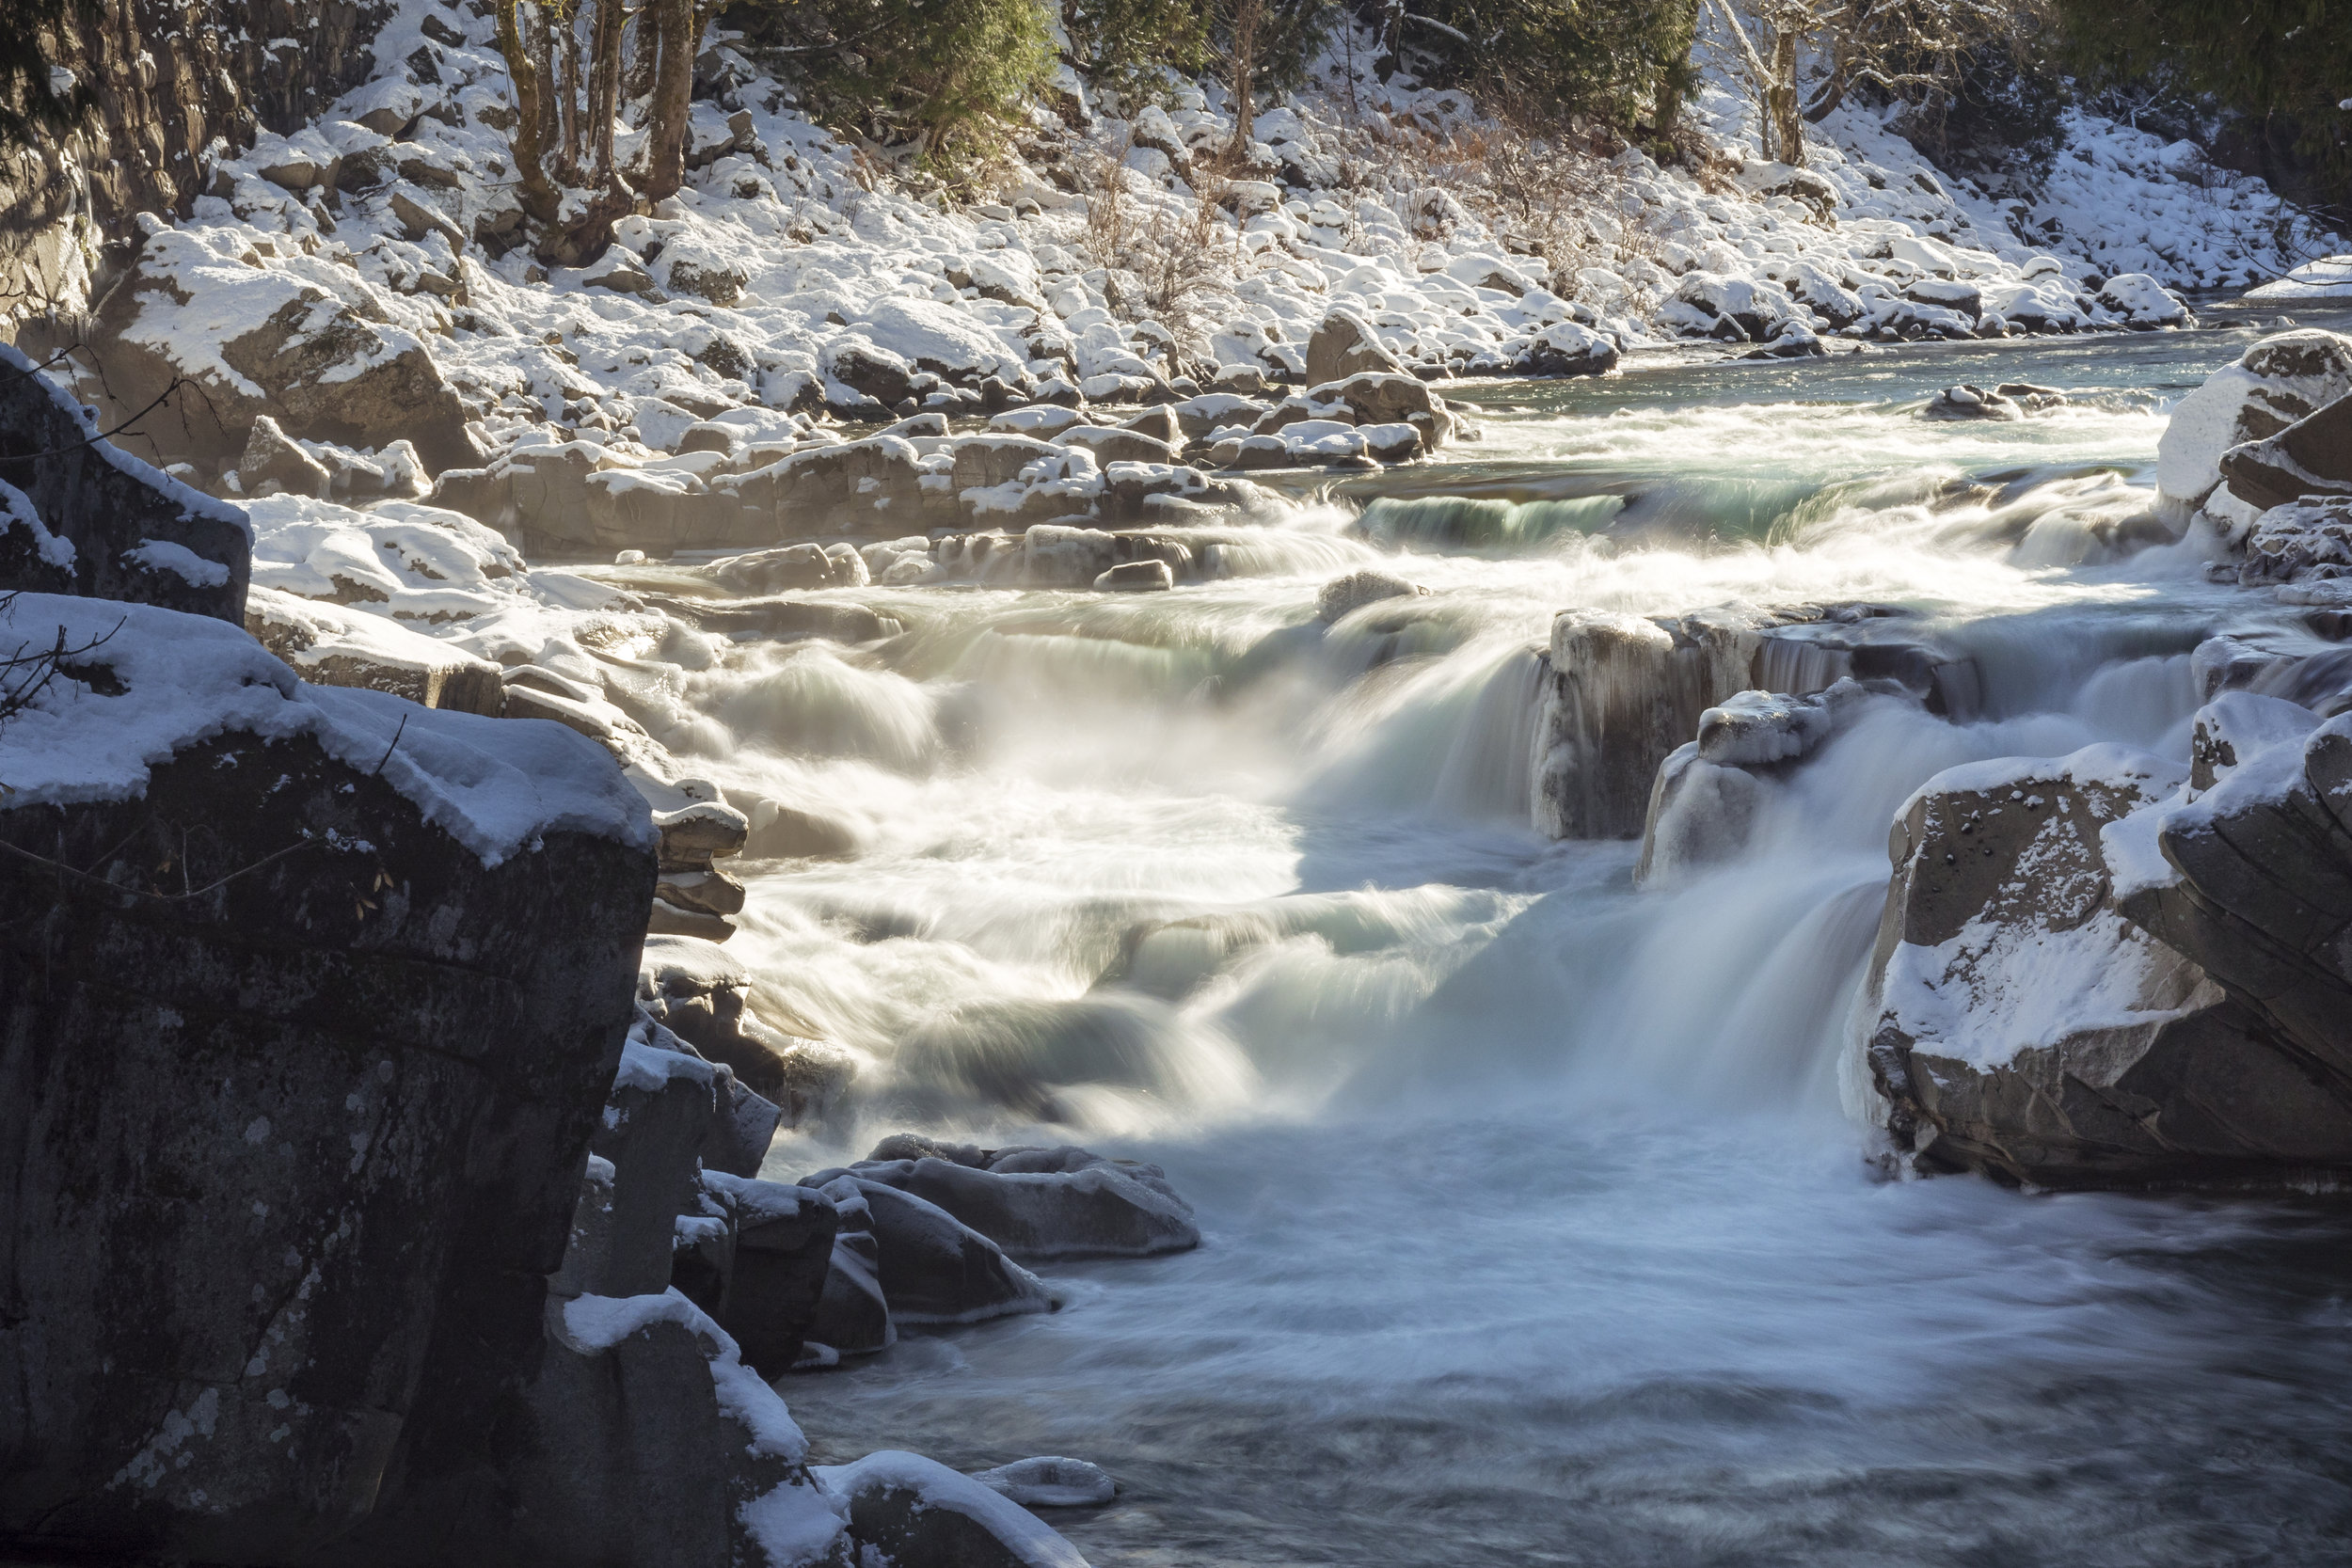 Peaceful_River_Landscape_Flowing_with_White_Water_Rapids_on_Winter_Snow_Covered_Rocks.jpg